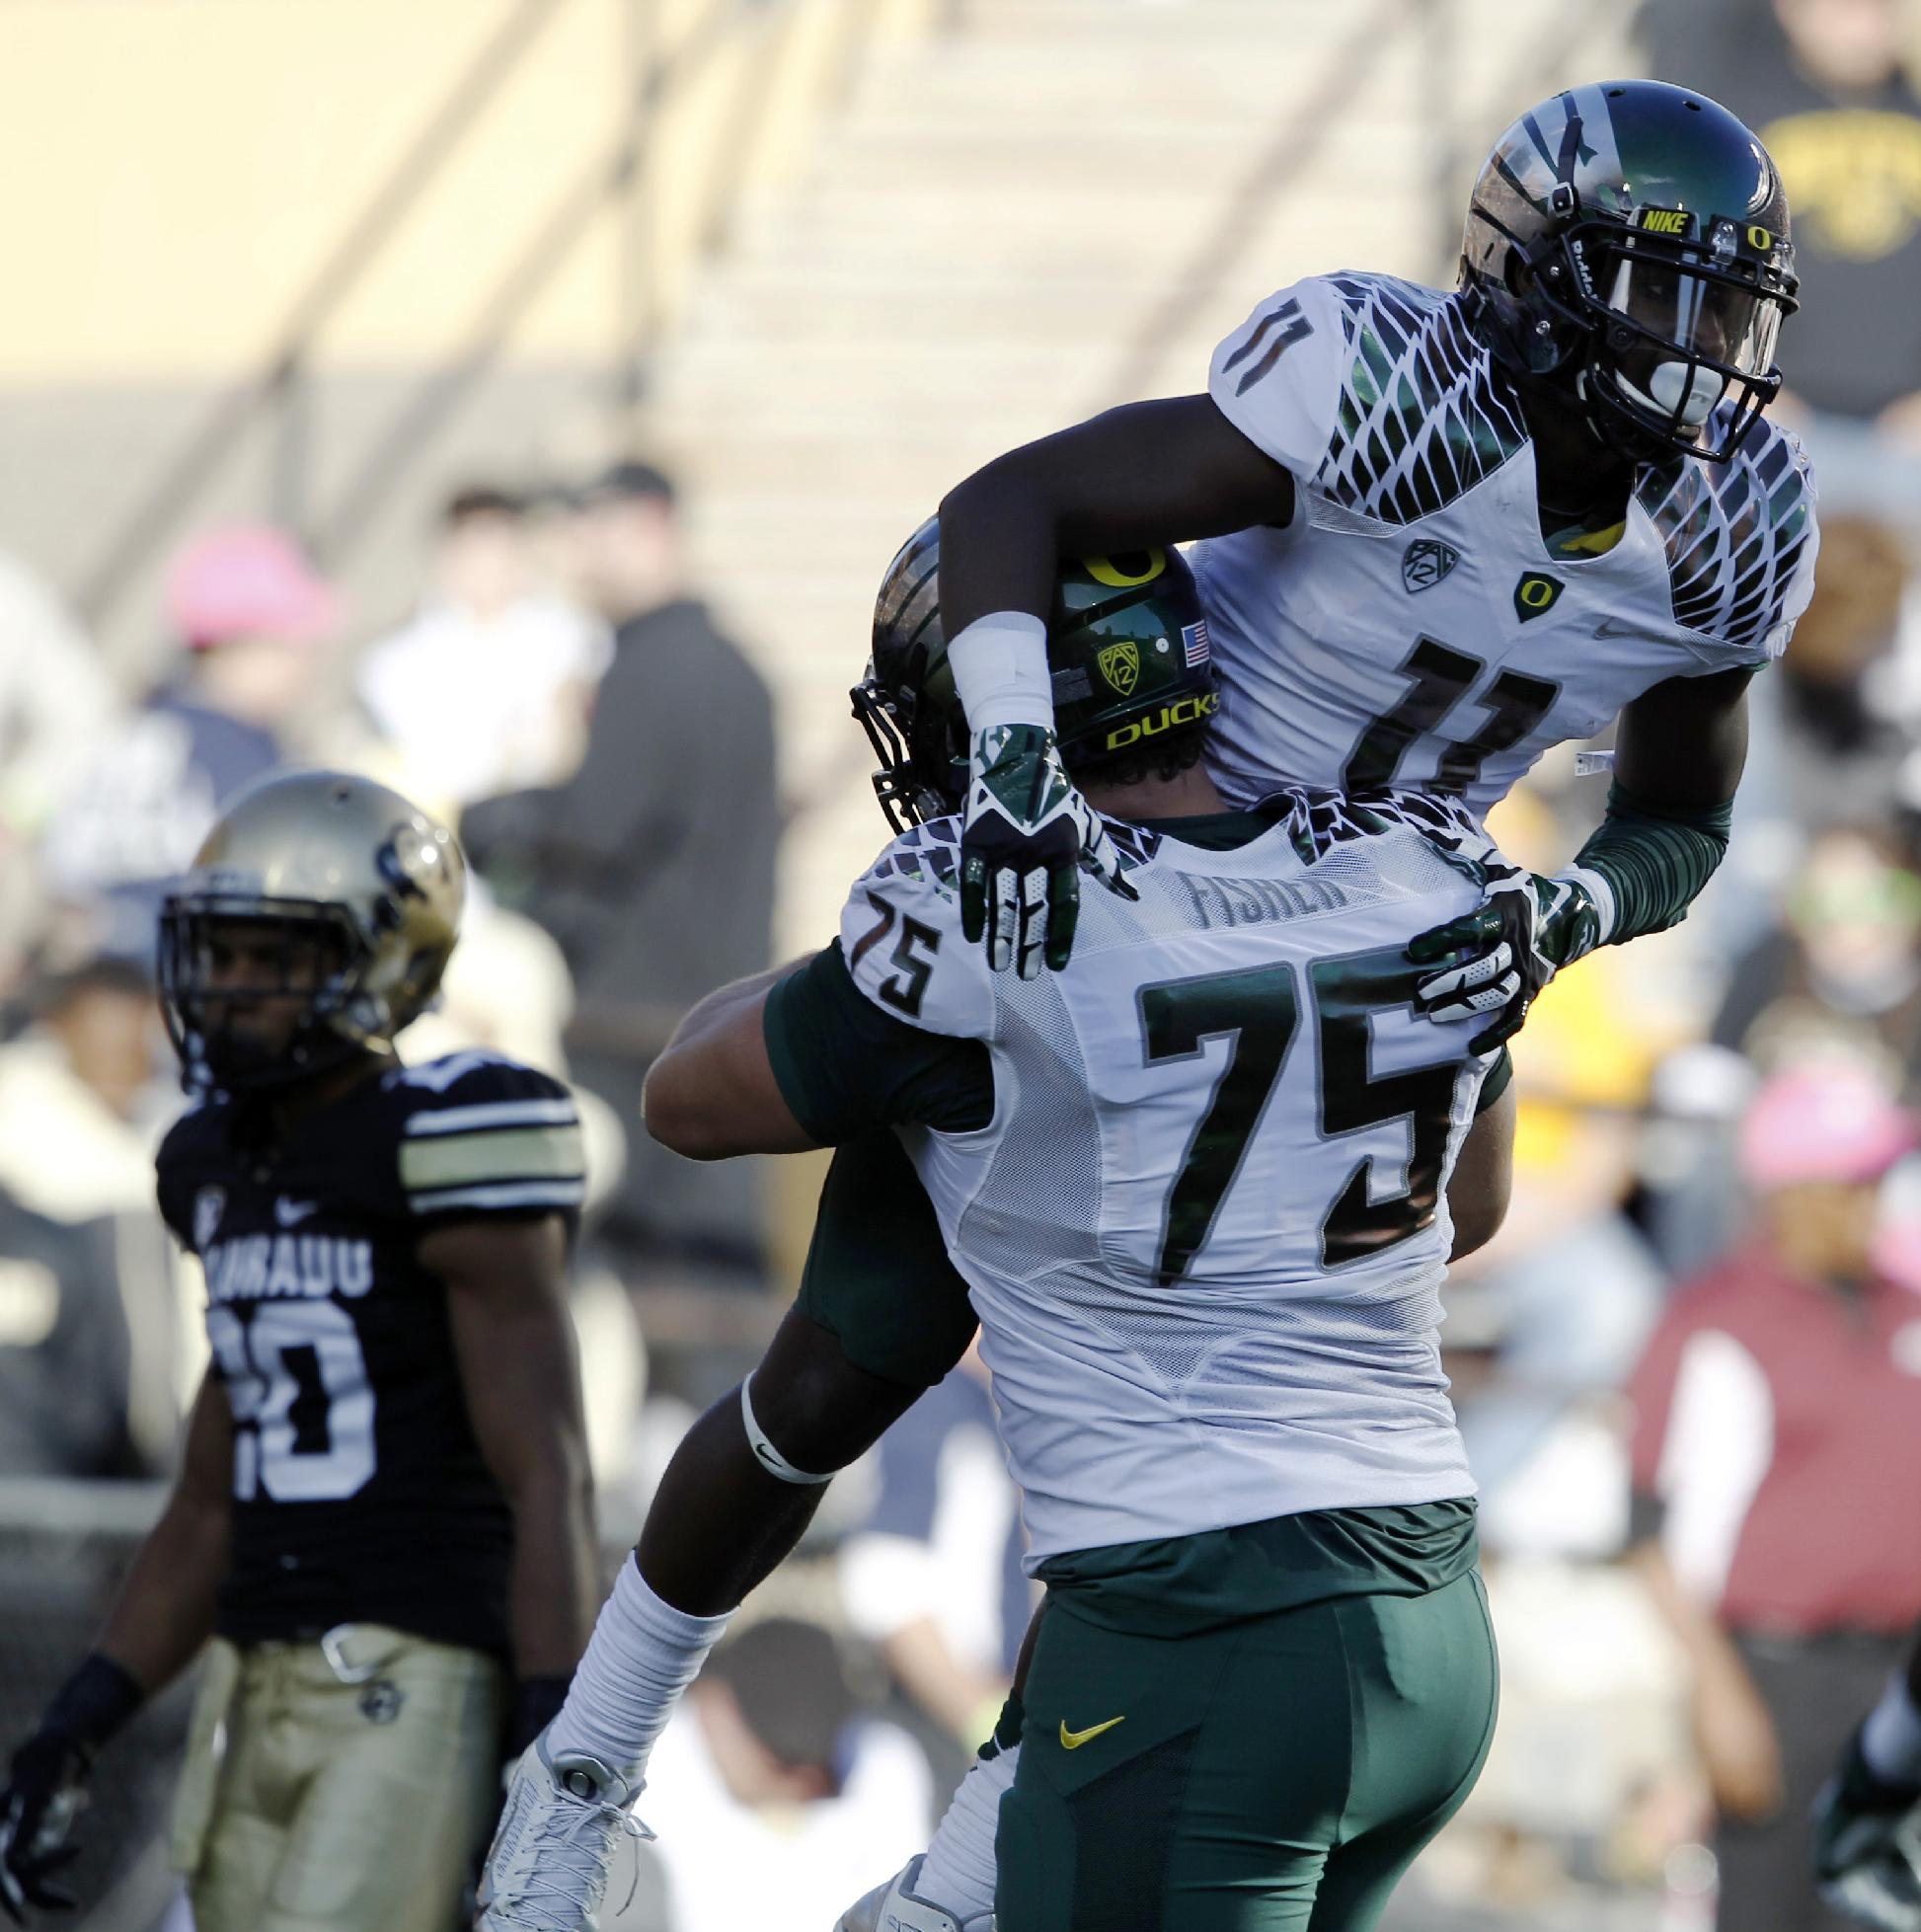 Oregon wide receiver Bralon Addison, front top, is hoisted in the air after his catch for a touchdown by offensive lineman Jake Fisher, front bottom against Colorado during the first quarter of an NCAA college football game in Boulder, Colo., on Saturday, Oct. 5, 2013